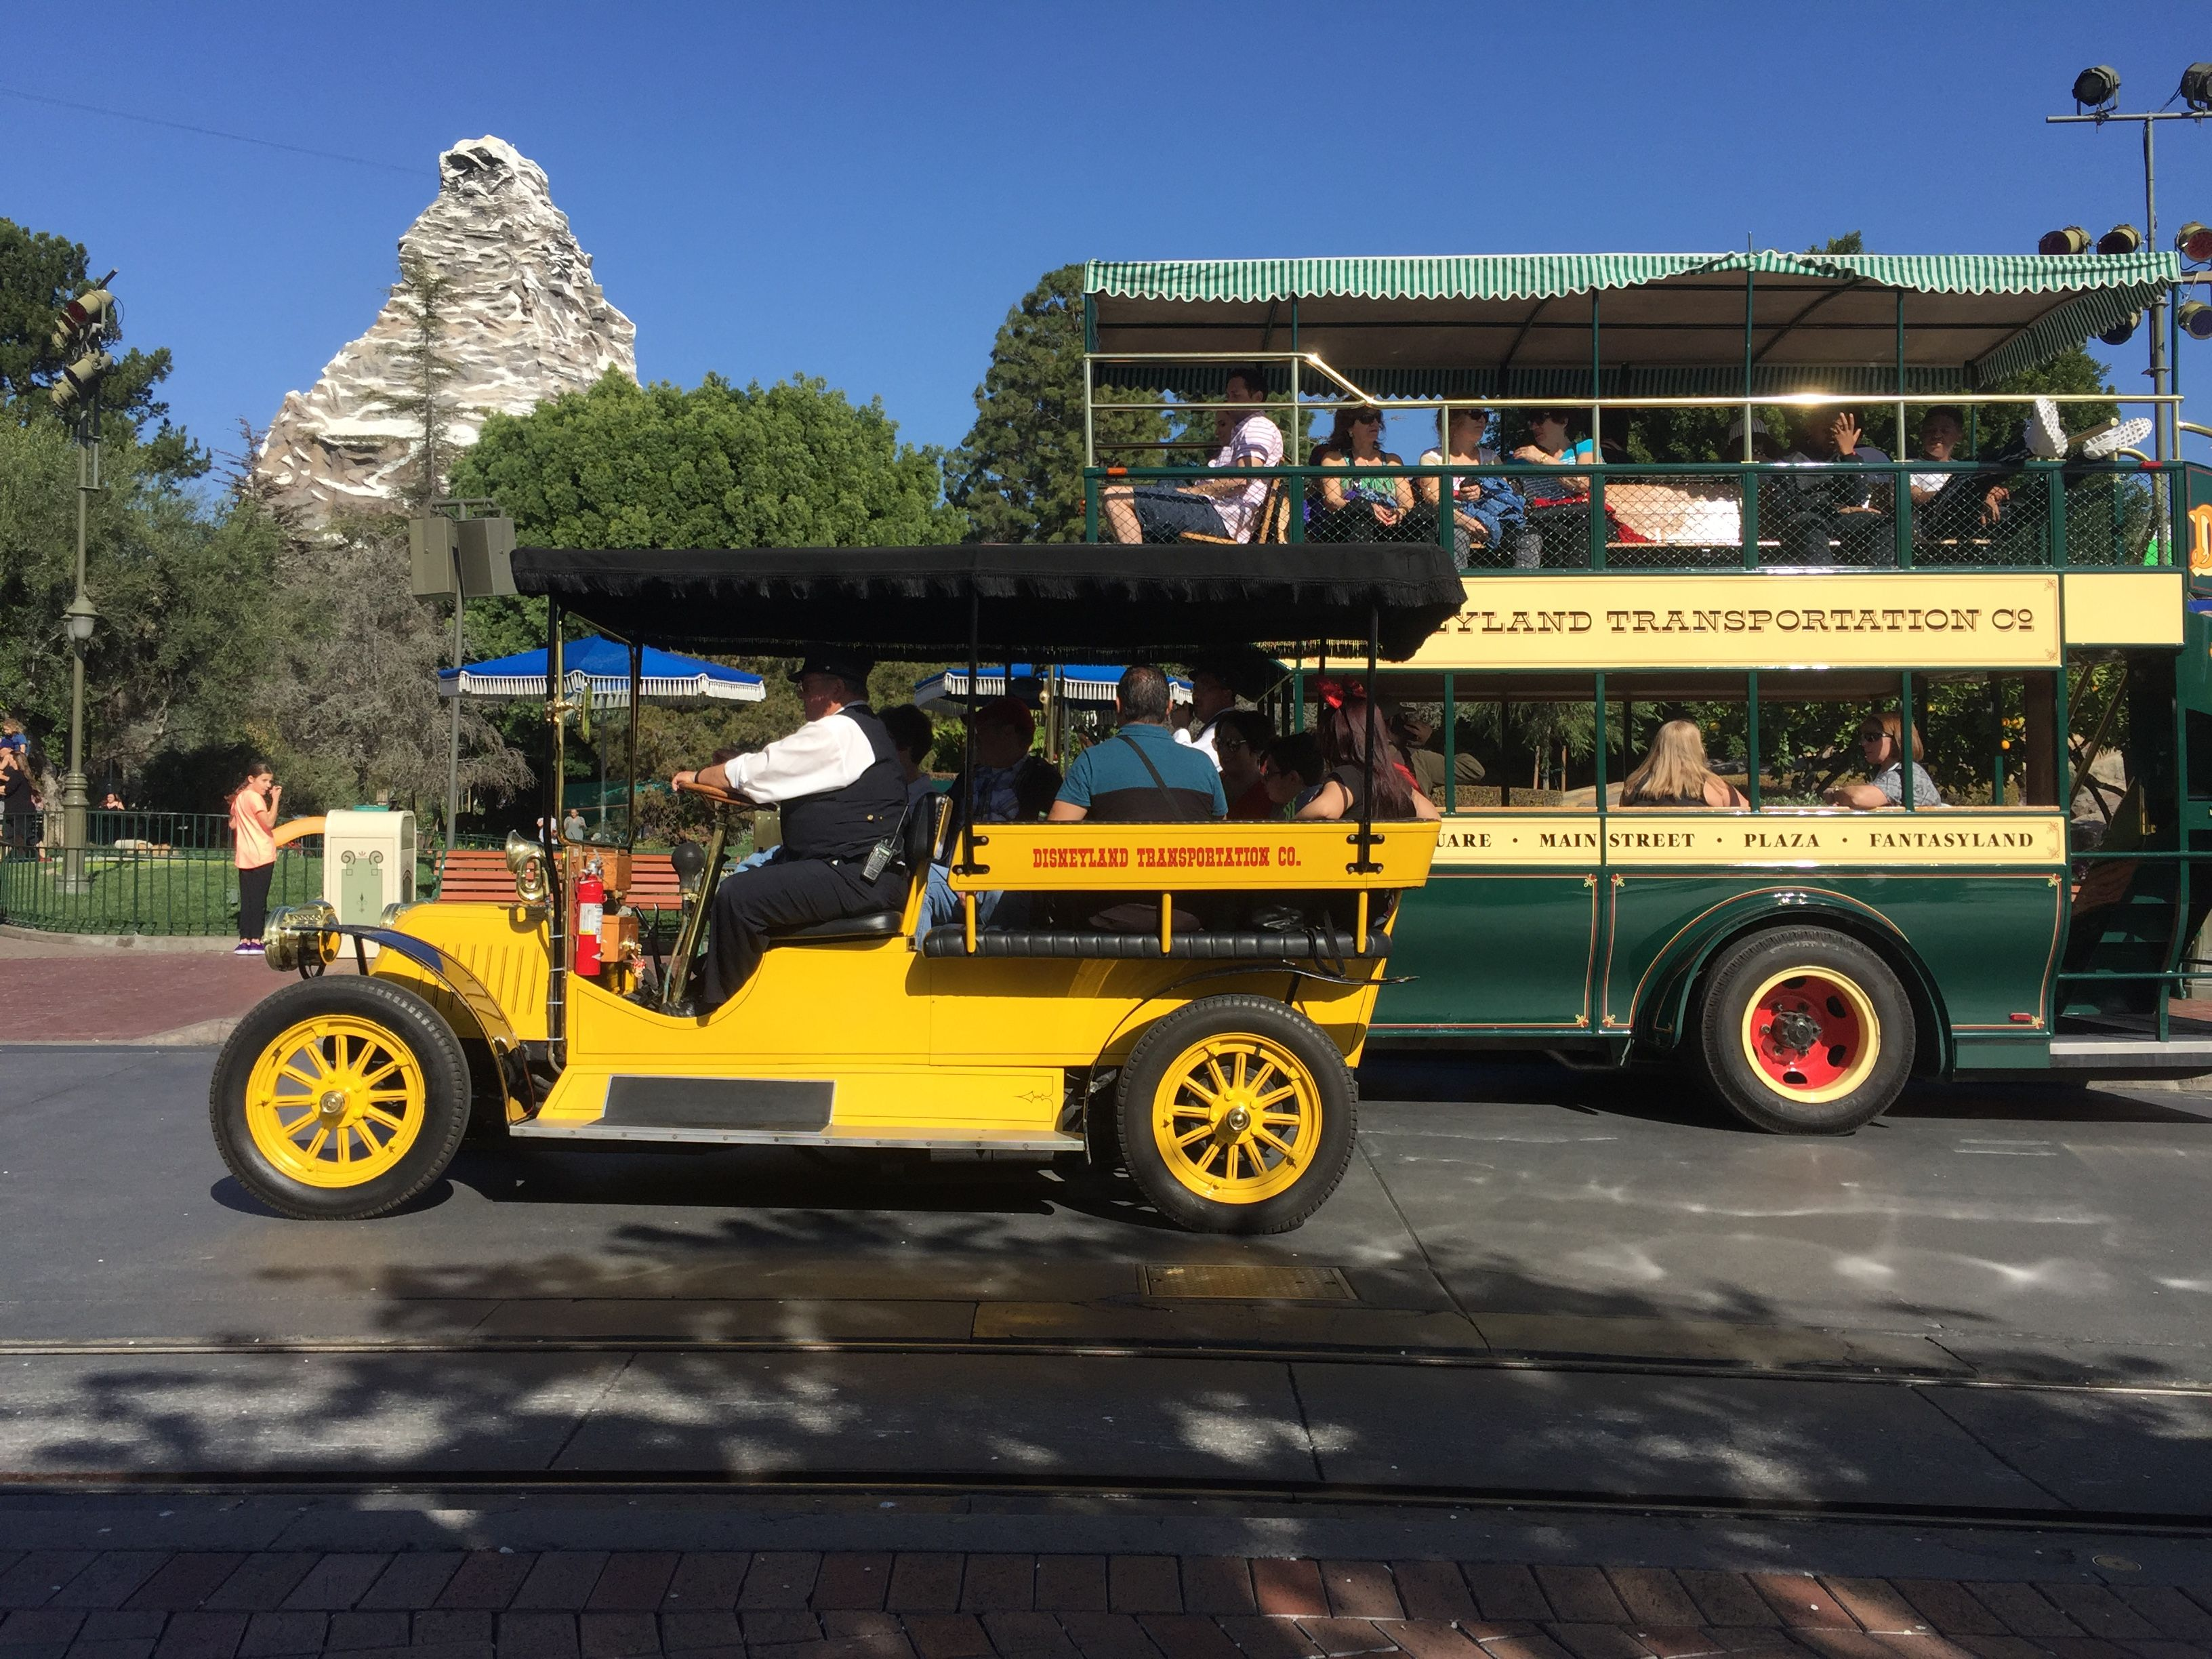 Disneyland Main Street vehicles The yellow car and Omni bus